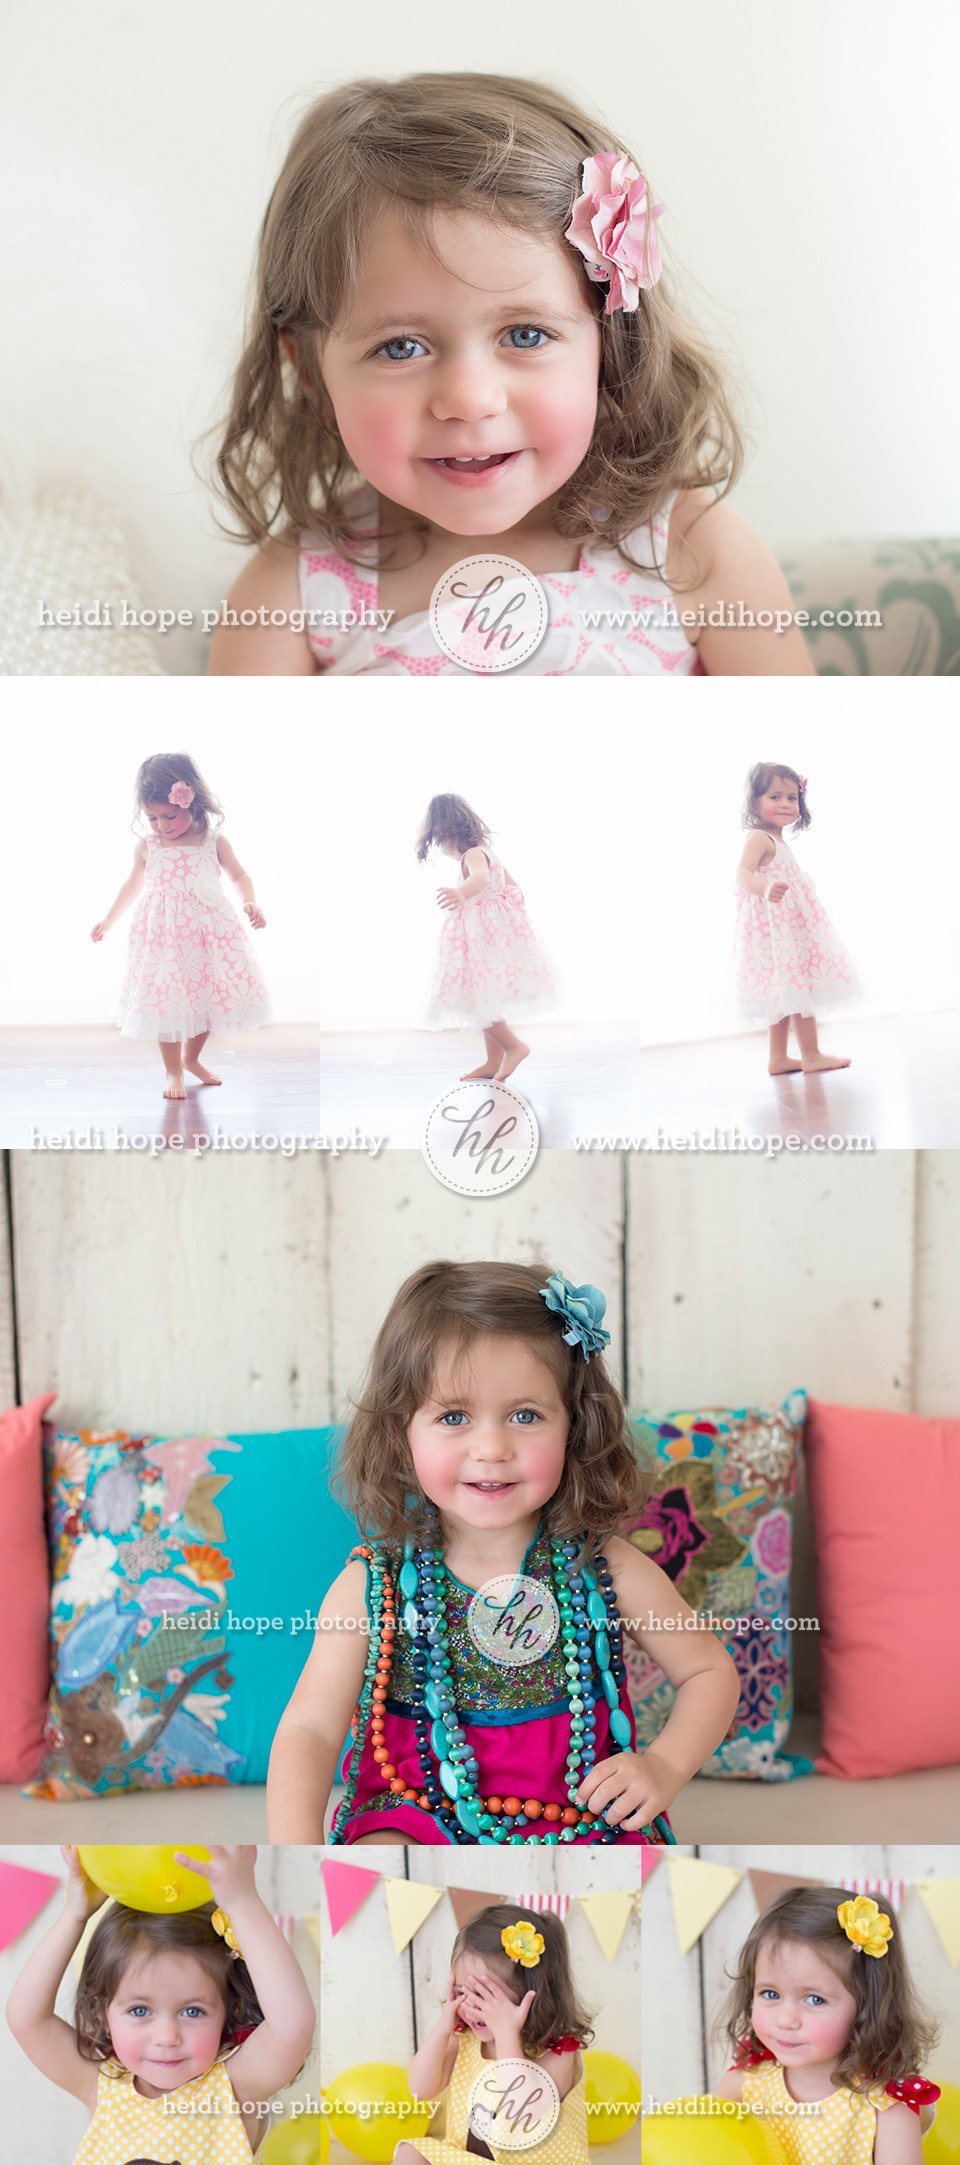 2-year-old-birthday-girl-portraits-rhode-island-modeling-photography